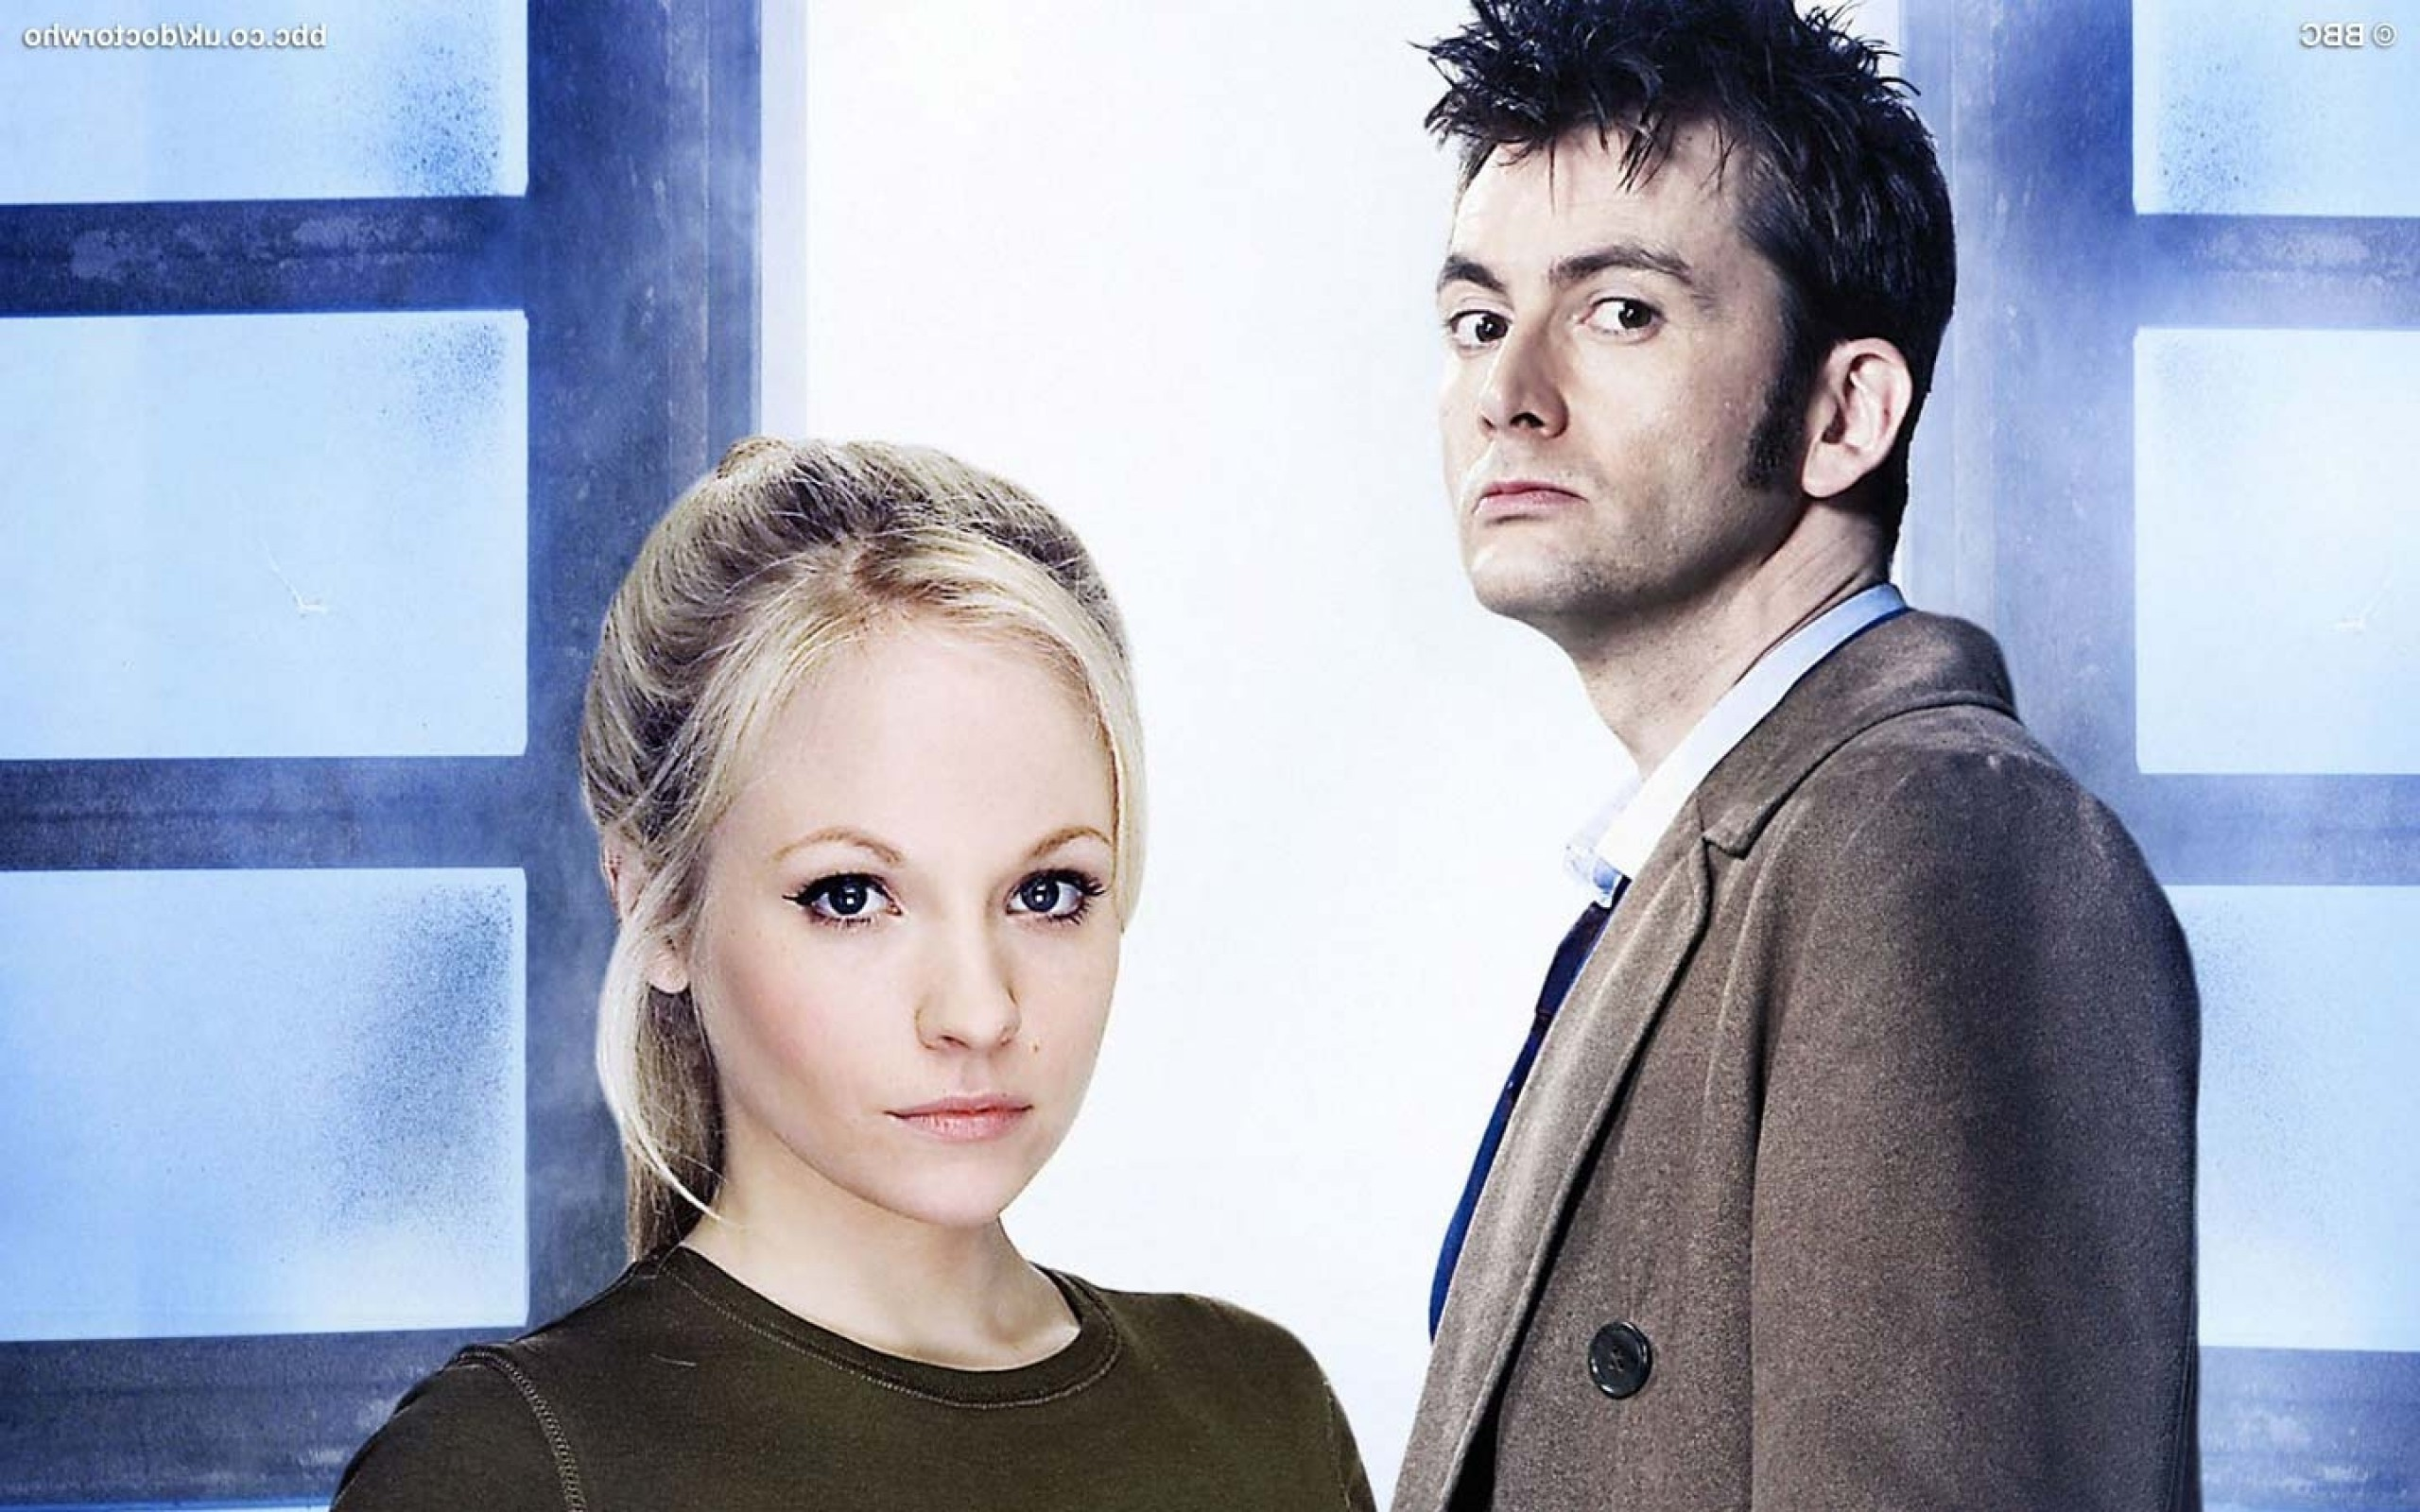 Doctor Who, The Doctor, TARDIS, David Tennant, Tenth Doctor Wallpapers HD /  Desktop and Mobile Backgrounds